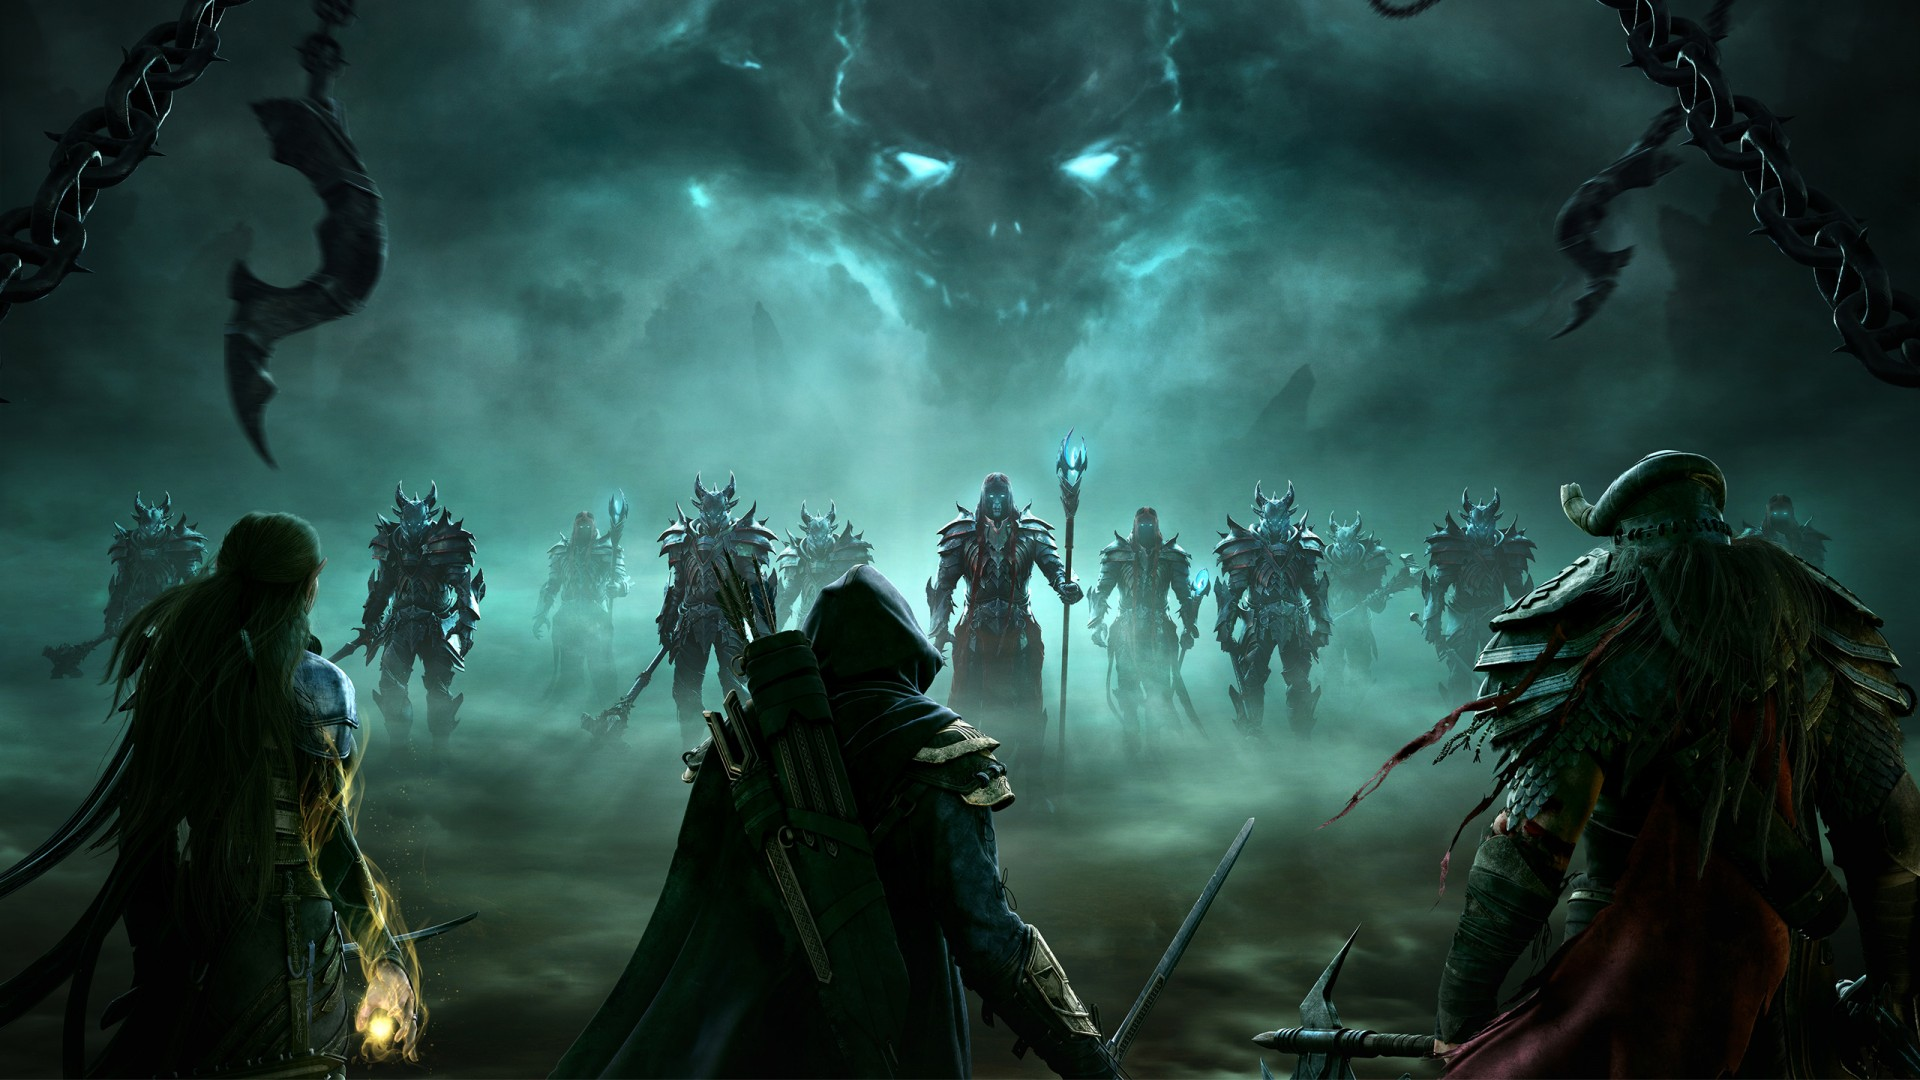 The Elder Scrolls Online The Elder Scrolls Online Wallpapers Hd Wallpapers Id